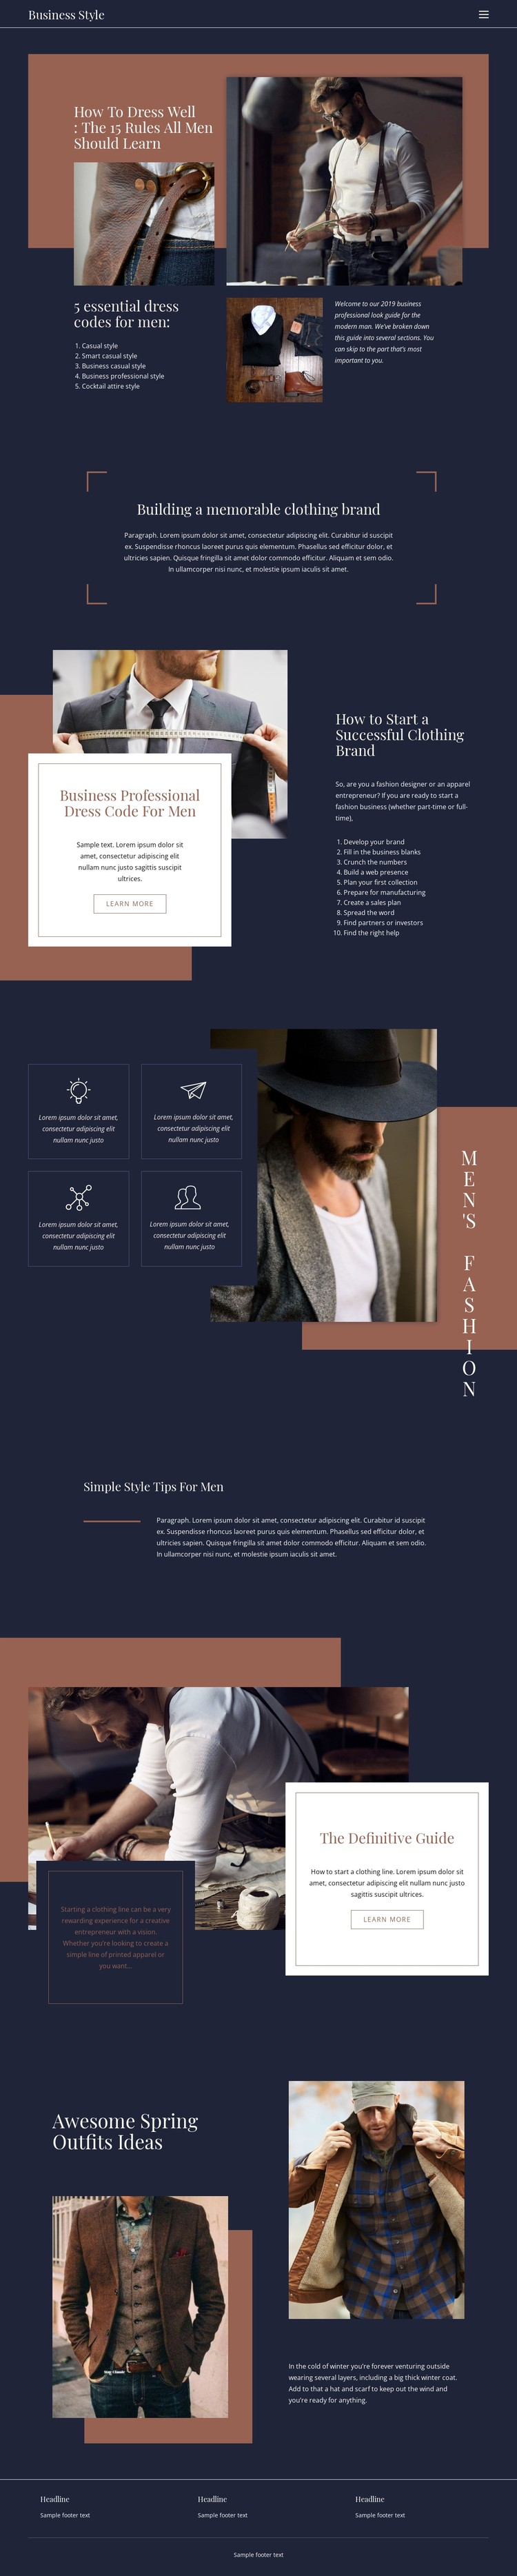 Winning rules of fashion CSS Template